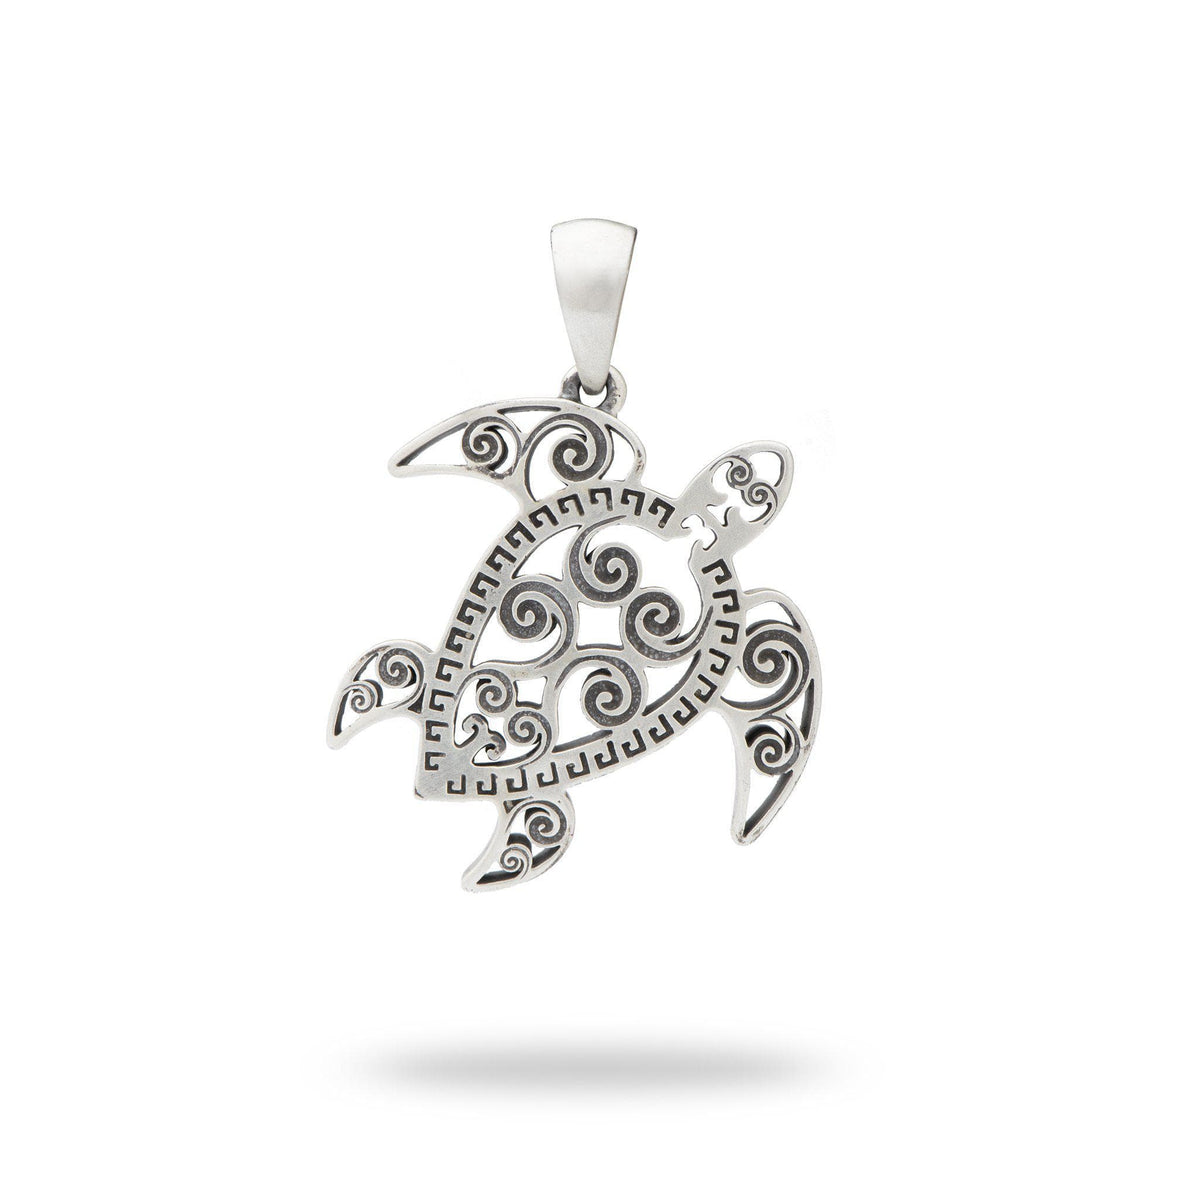 Honu (Turtle) Pendant in Sterling Silver (30mm)